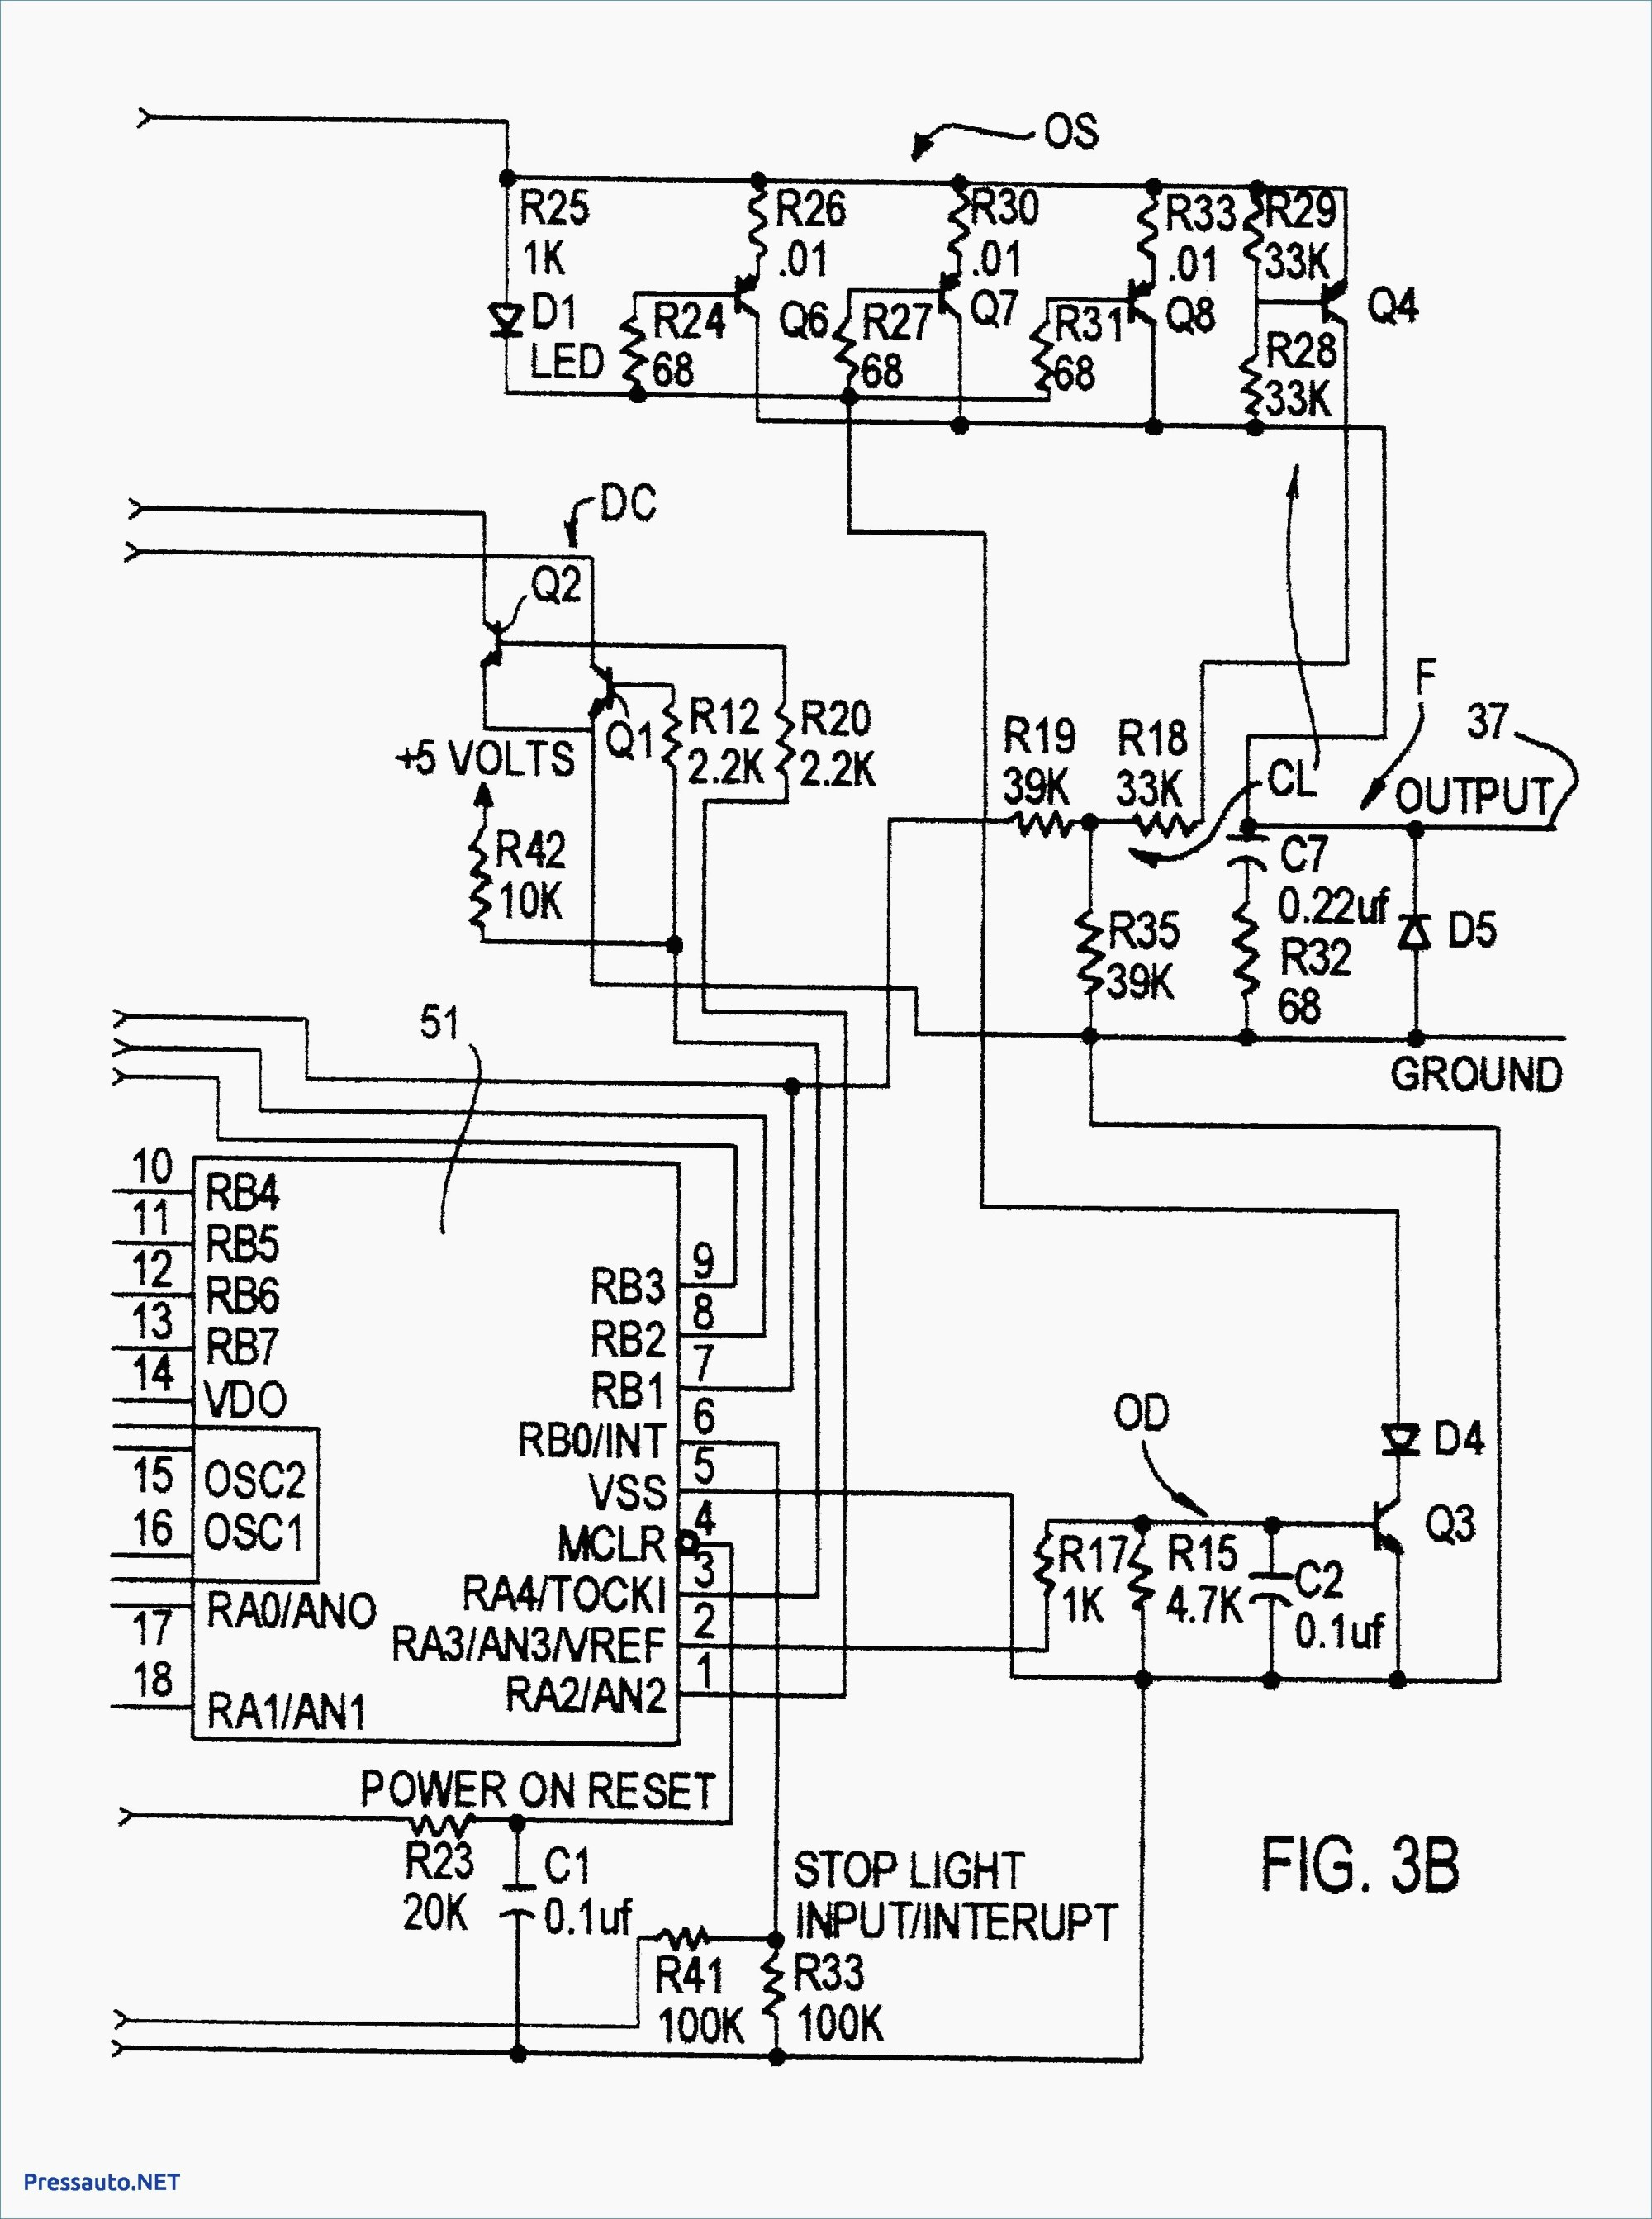 hight resolution of simplicity mower wiring diagram wiring diagram user lawn mower wiring diagram simplicity wiring diagram img simplicity